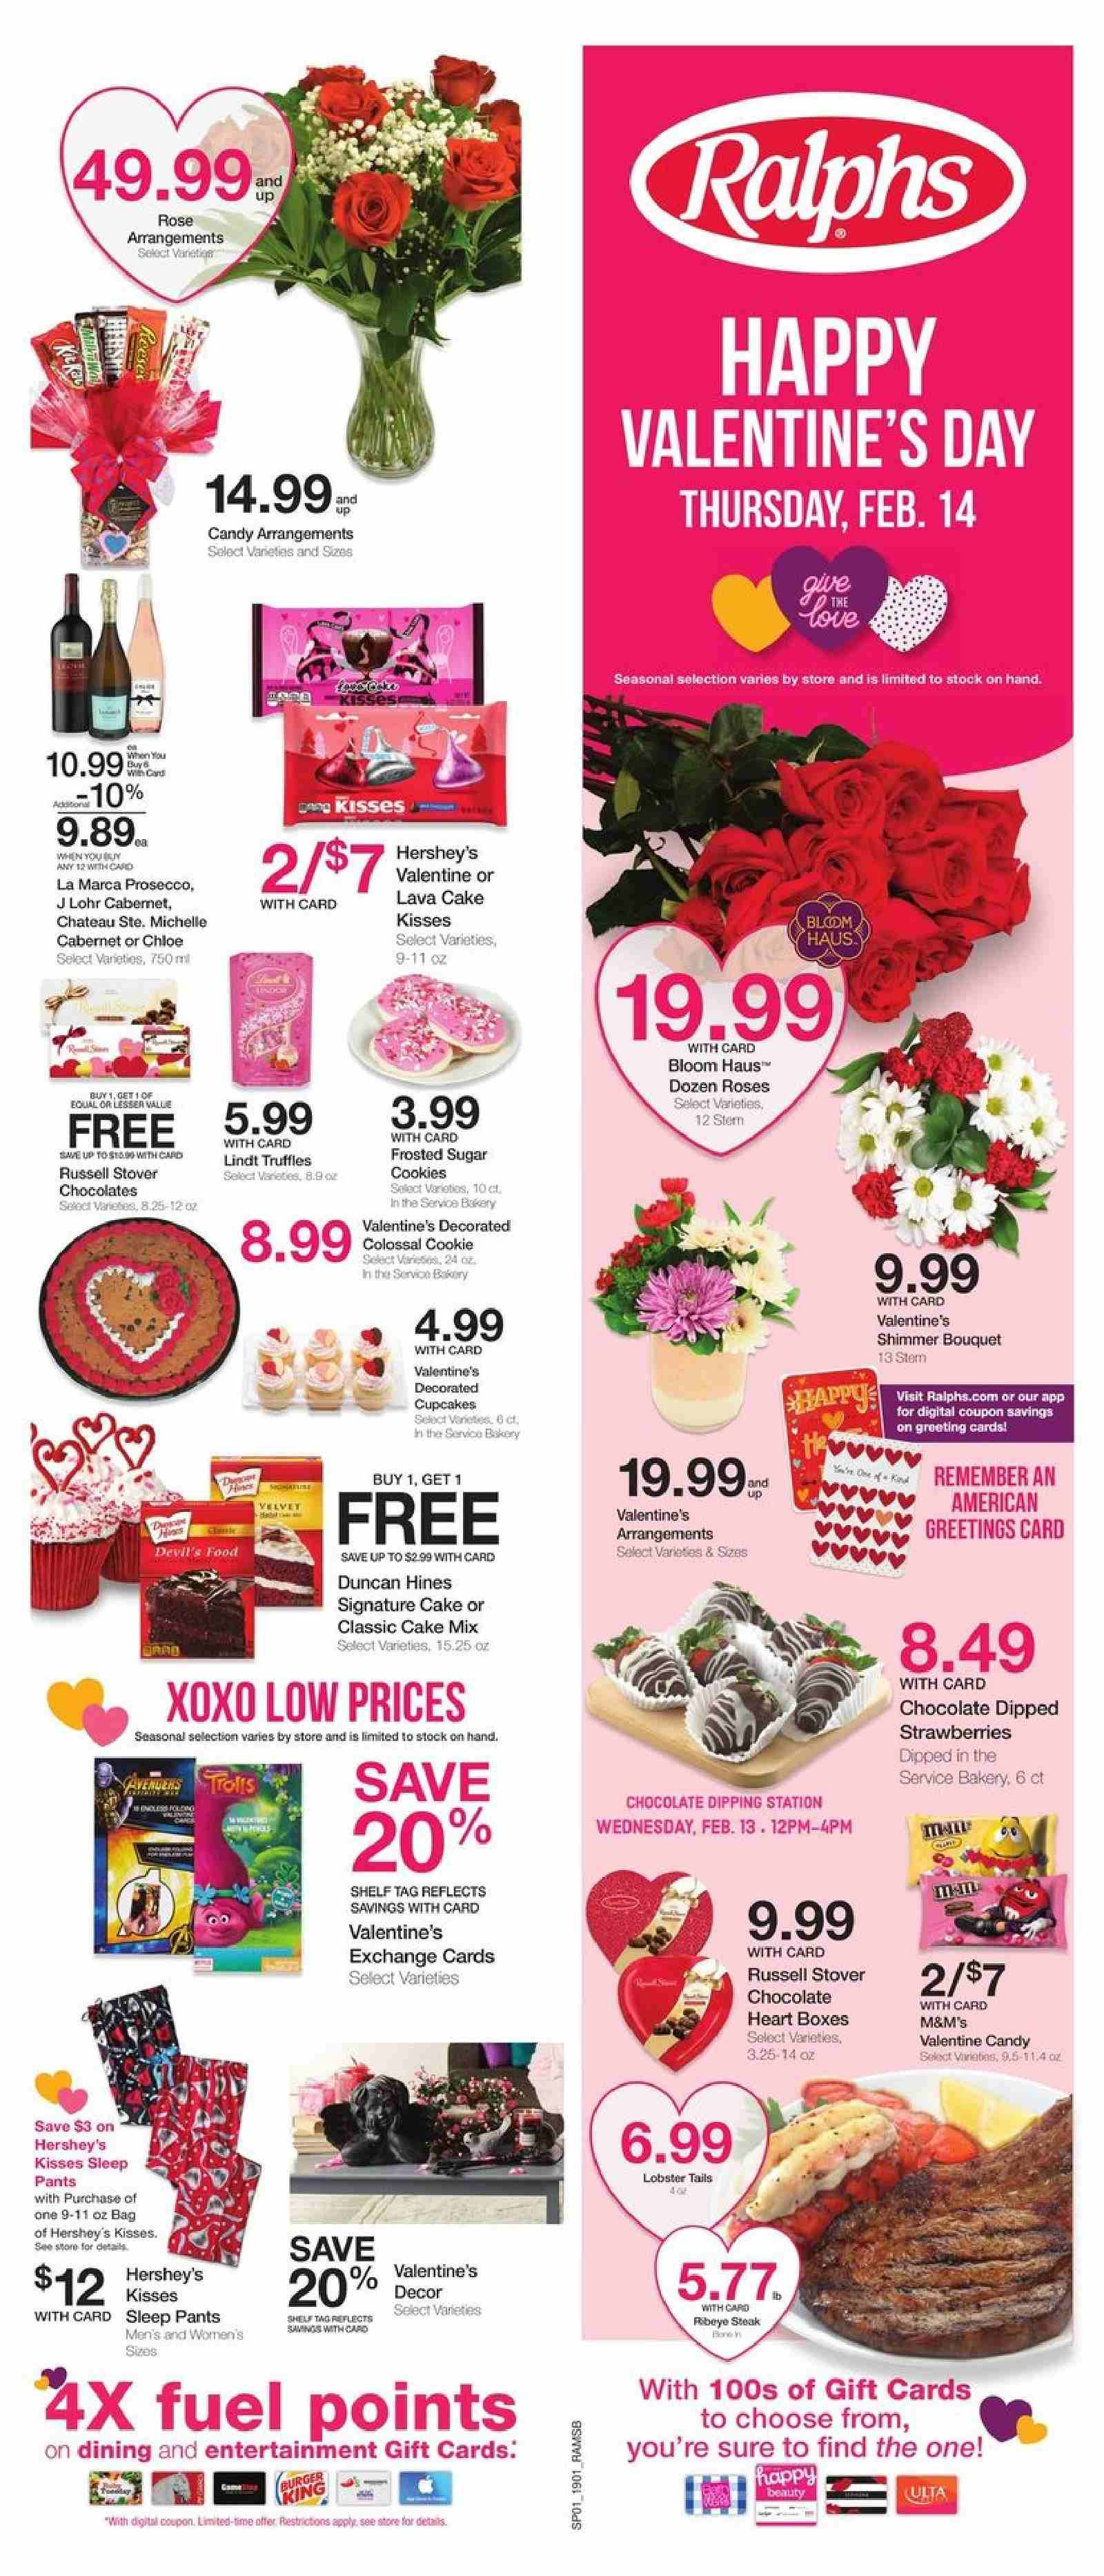 Ralphs Flyer  - 02.06.2019 - 02.12.2019. Page 2.